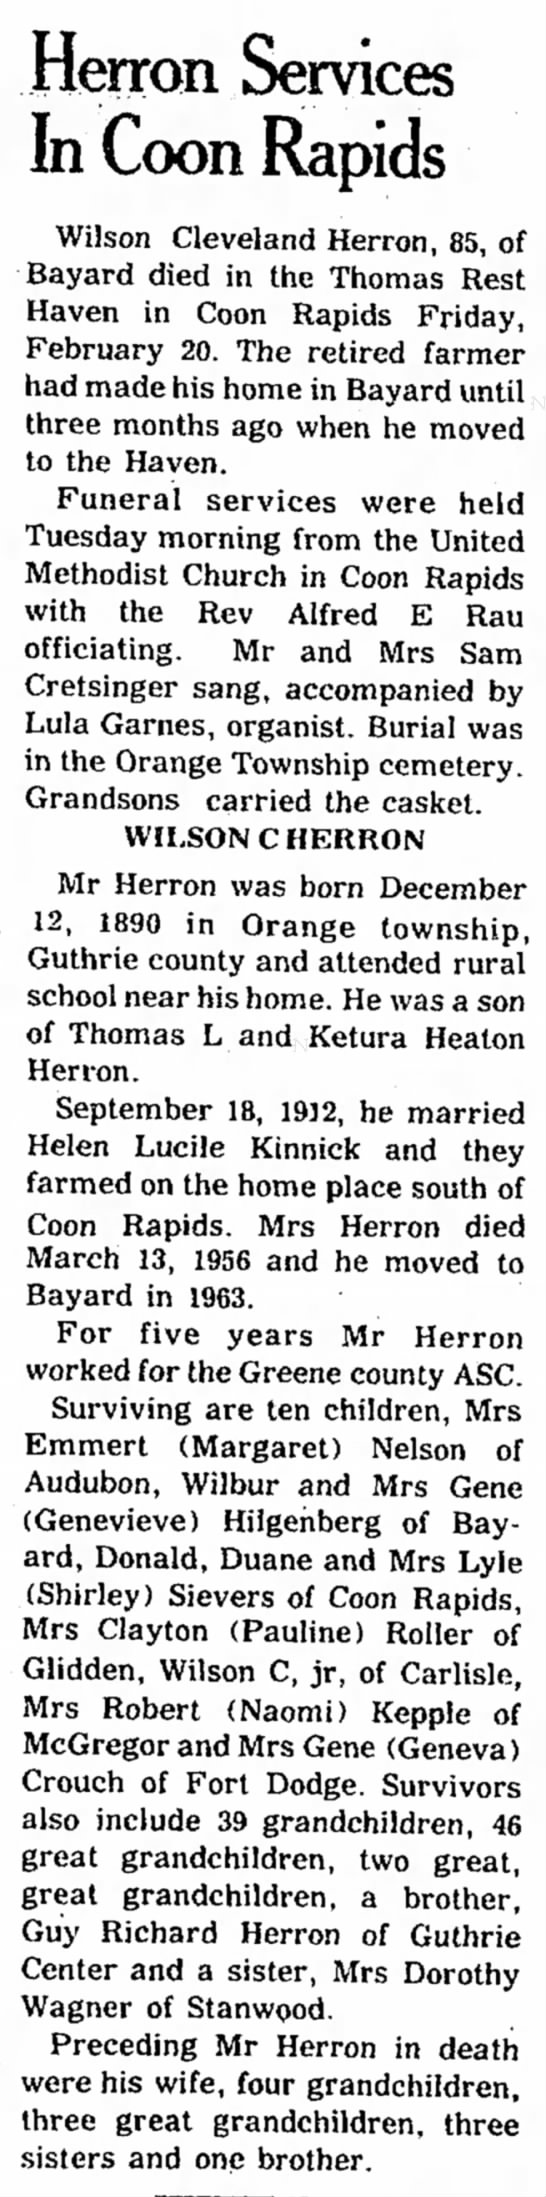 Obit of Wilson C Herron, The Bayard News (Bayard Iowa) 26 Feb 1976 - in. been a He Des the the the a of the Herron...